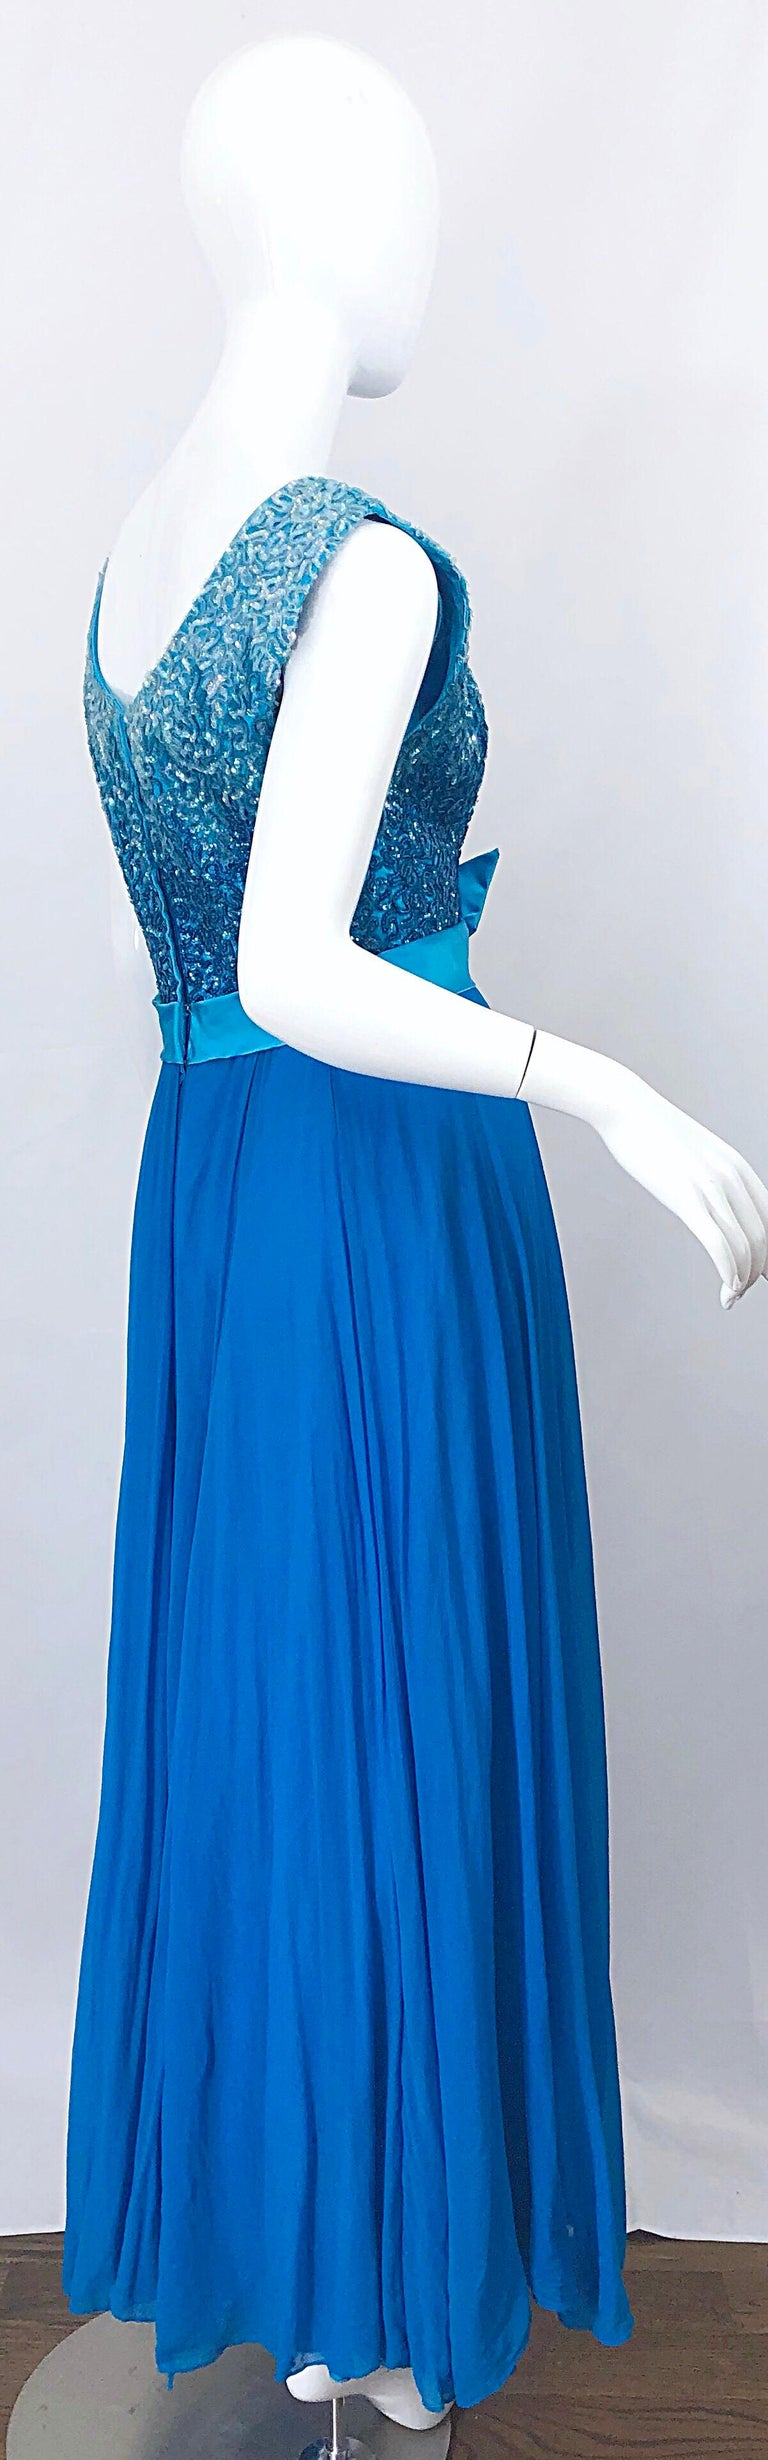 1950s Emma Domb Turquoise Blue Ombre Sequined Silk Chiffon Vintage 50s Gown For Sale 6